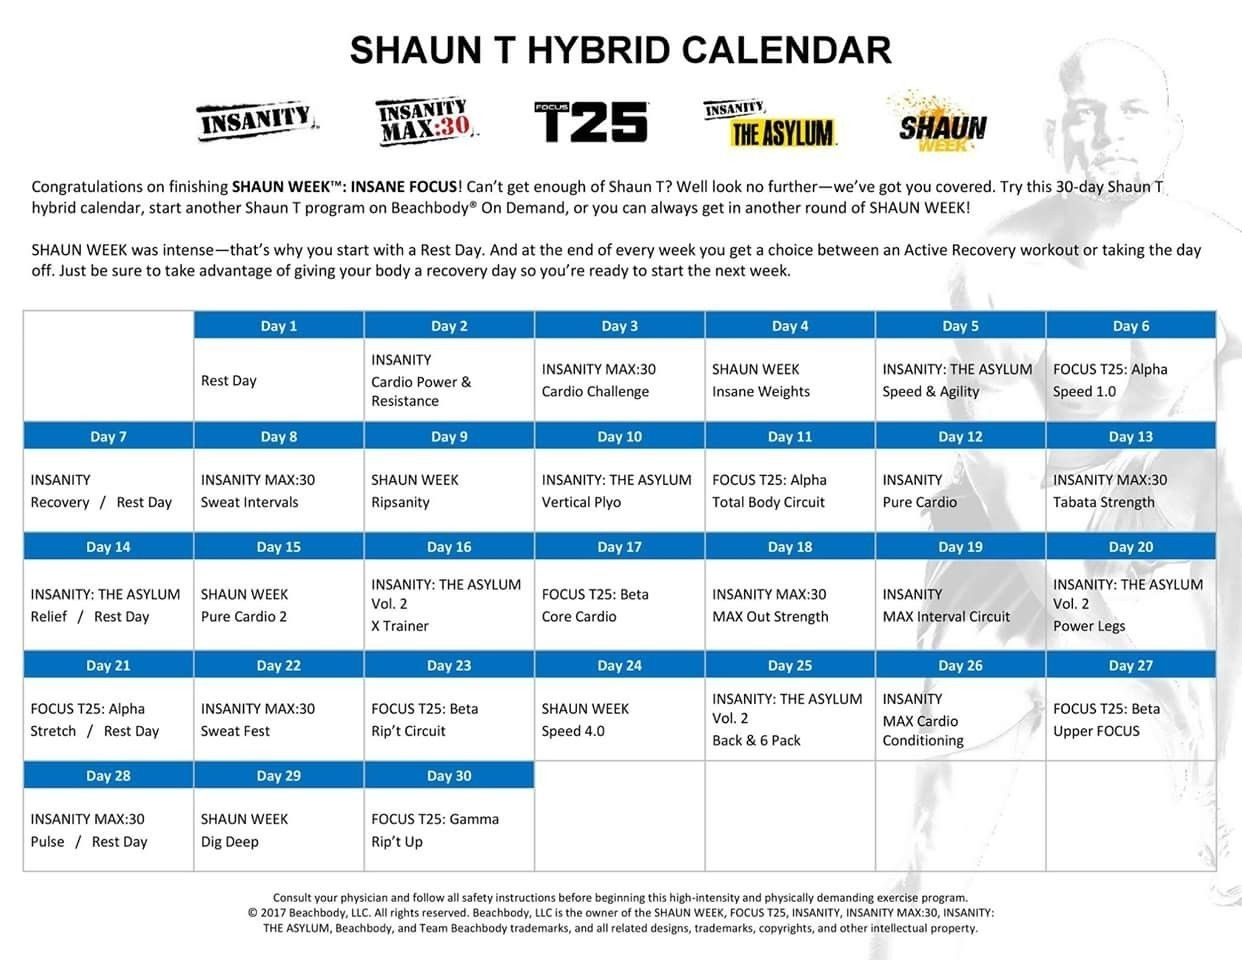 Shaun Week Monthly Calendar #2 Calendrier Hybride Mensuel pertaining to Calendrier Hybride Insanity Max 30